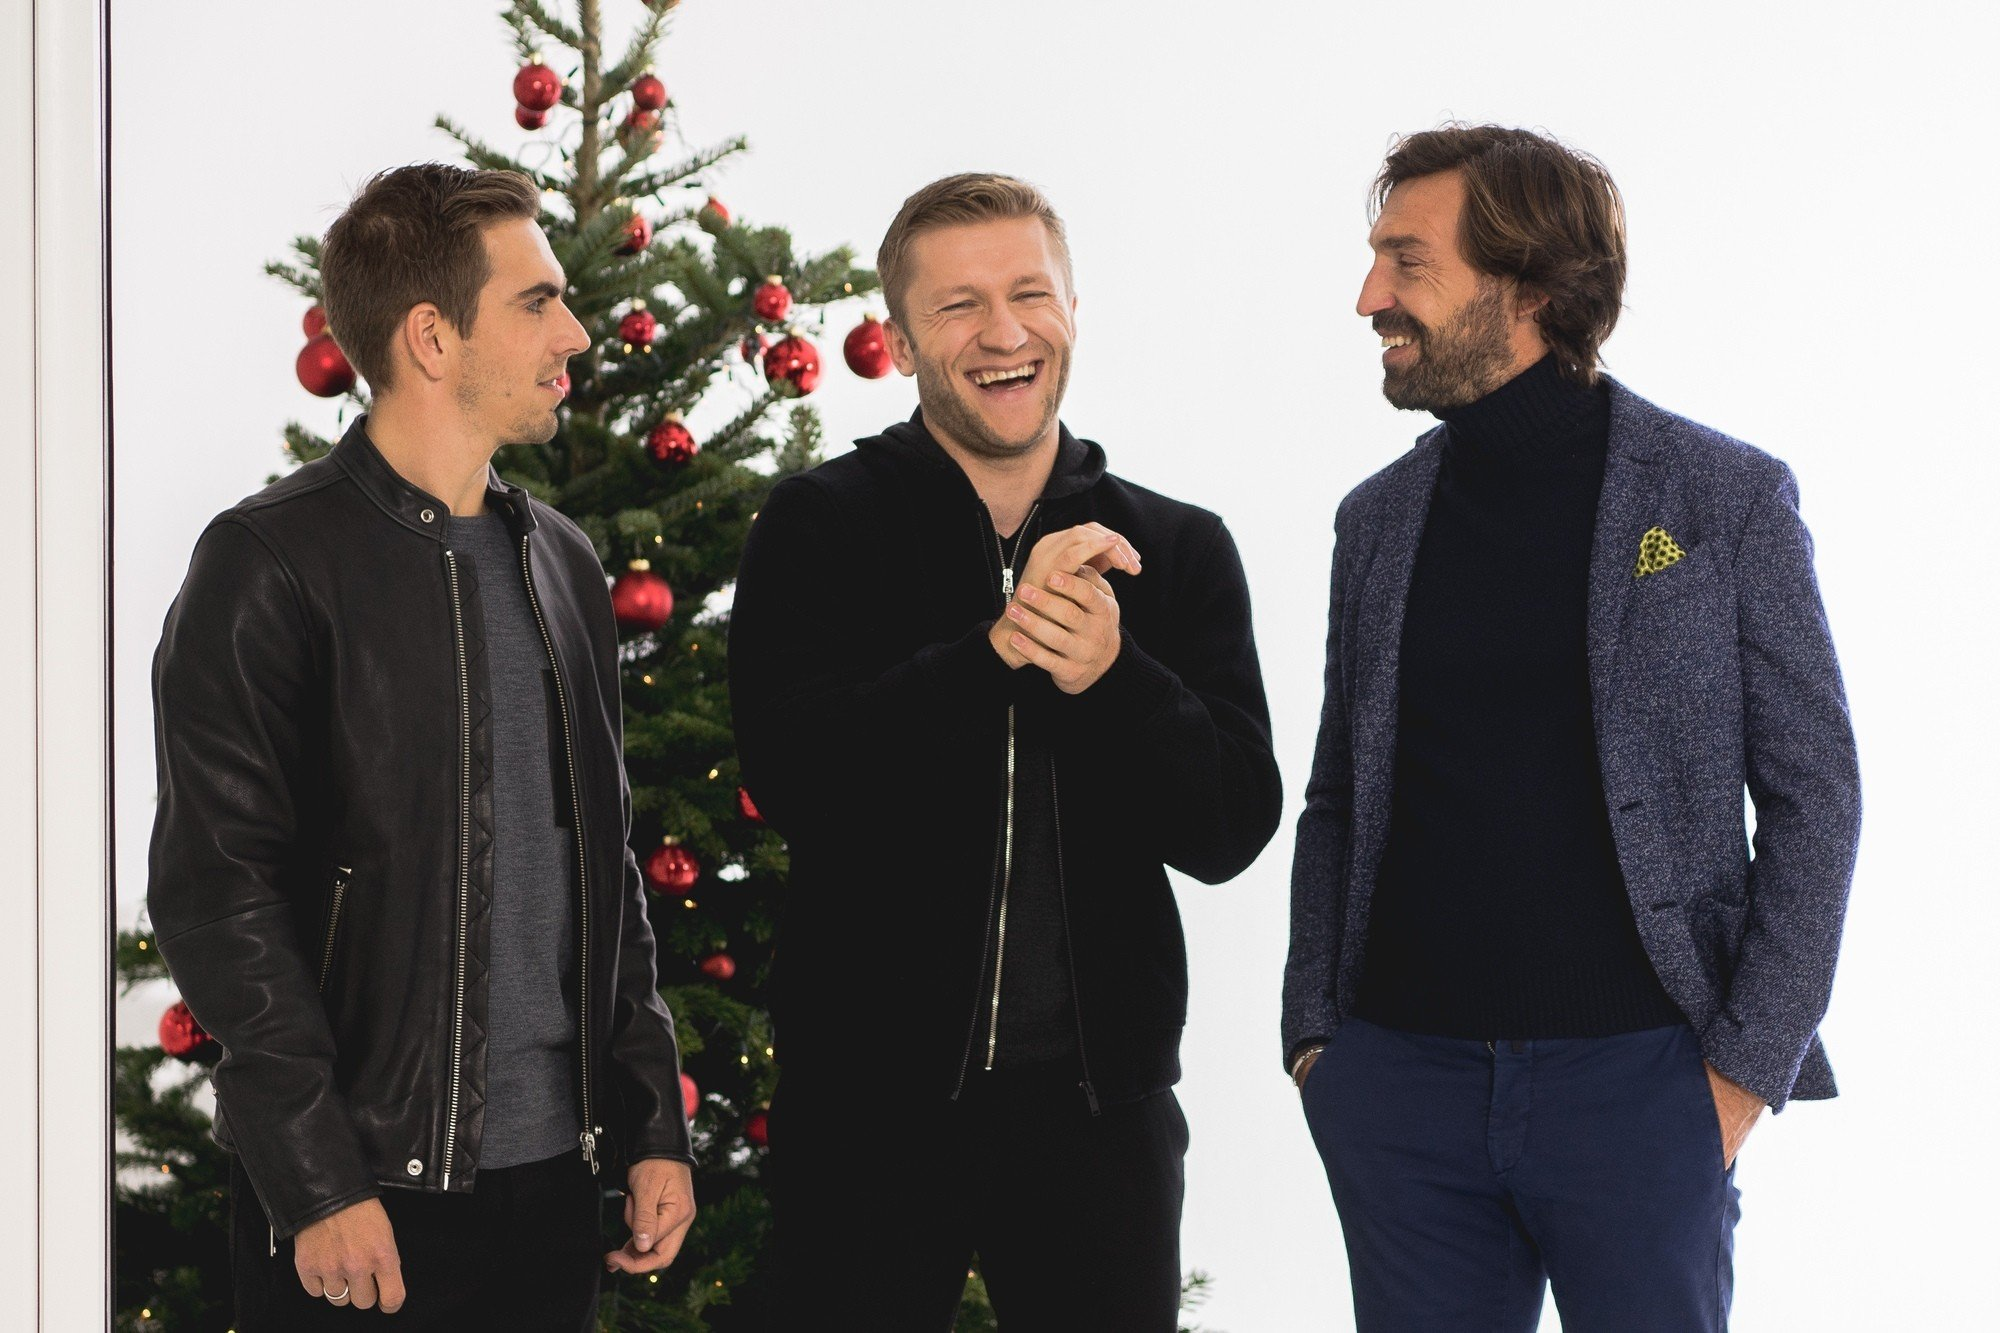 Pirlo, Lahm and Błaszczykowski make Christmas wishes!